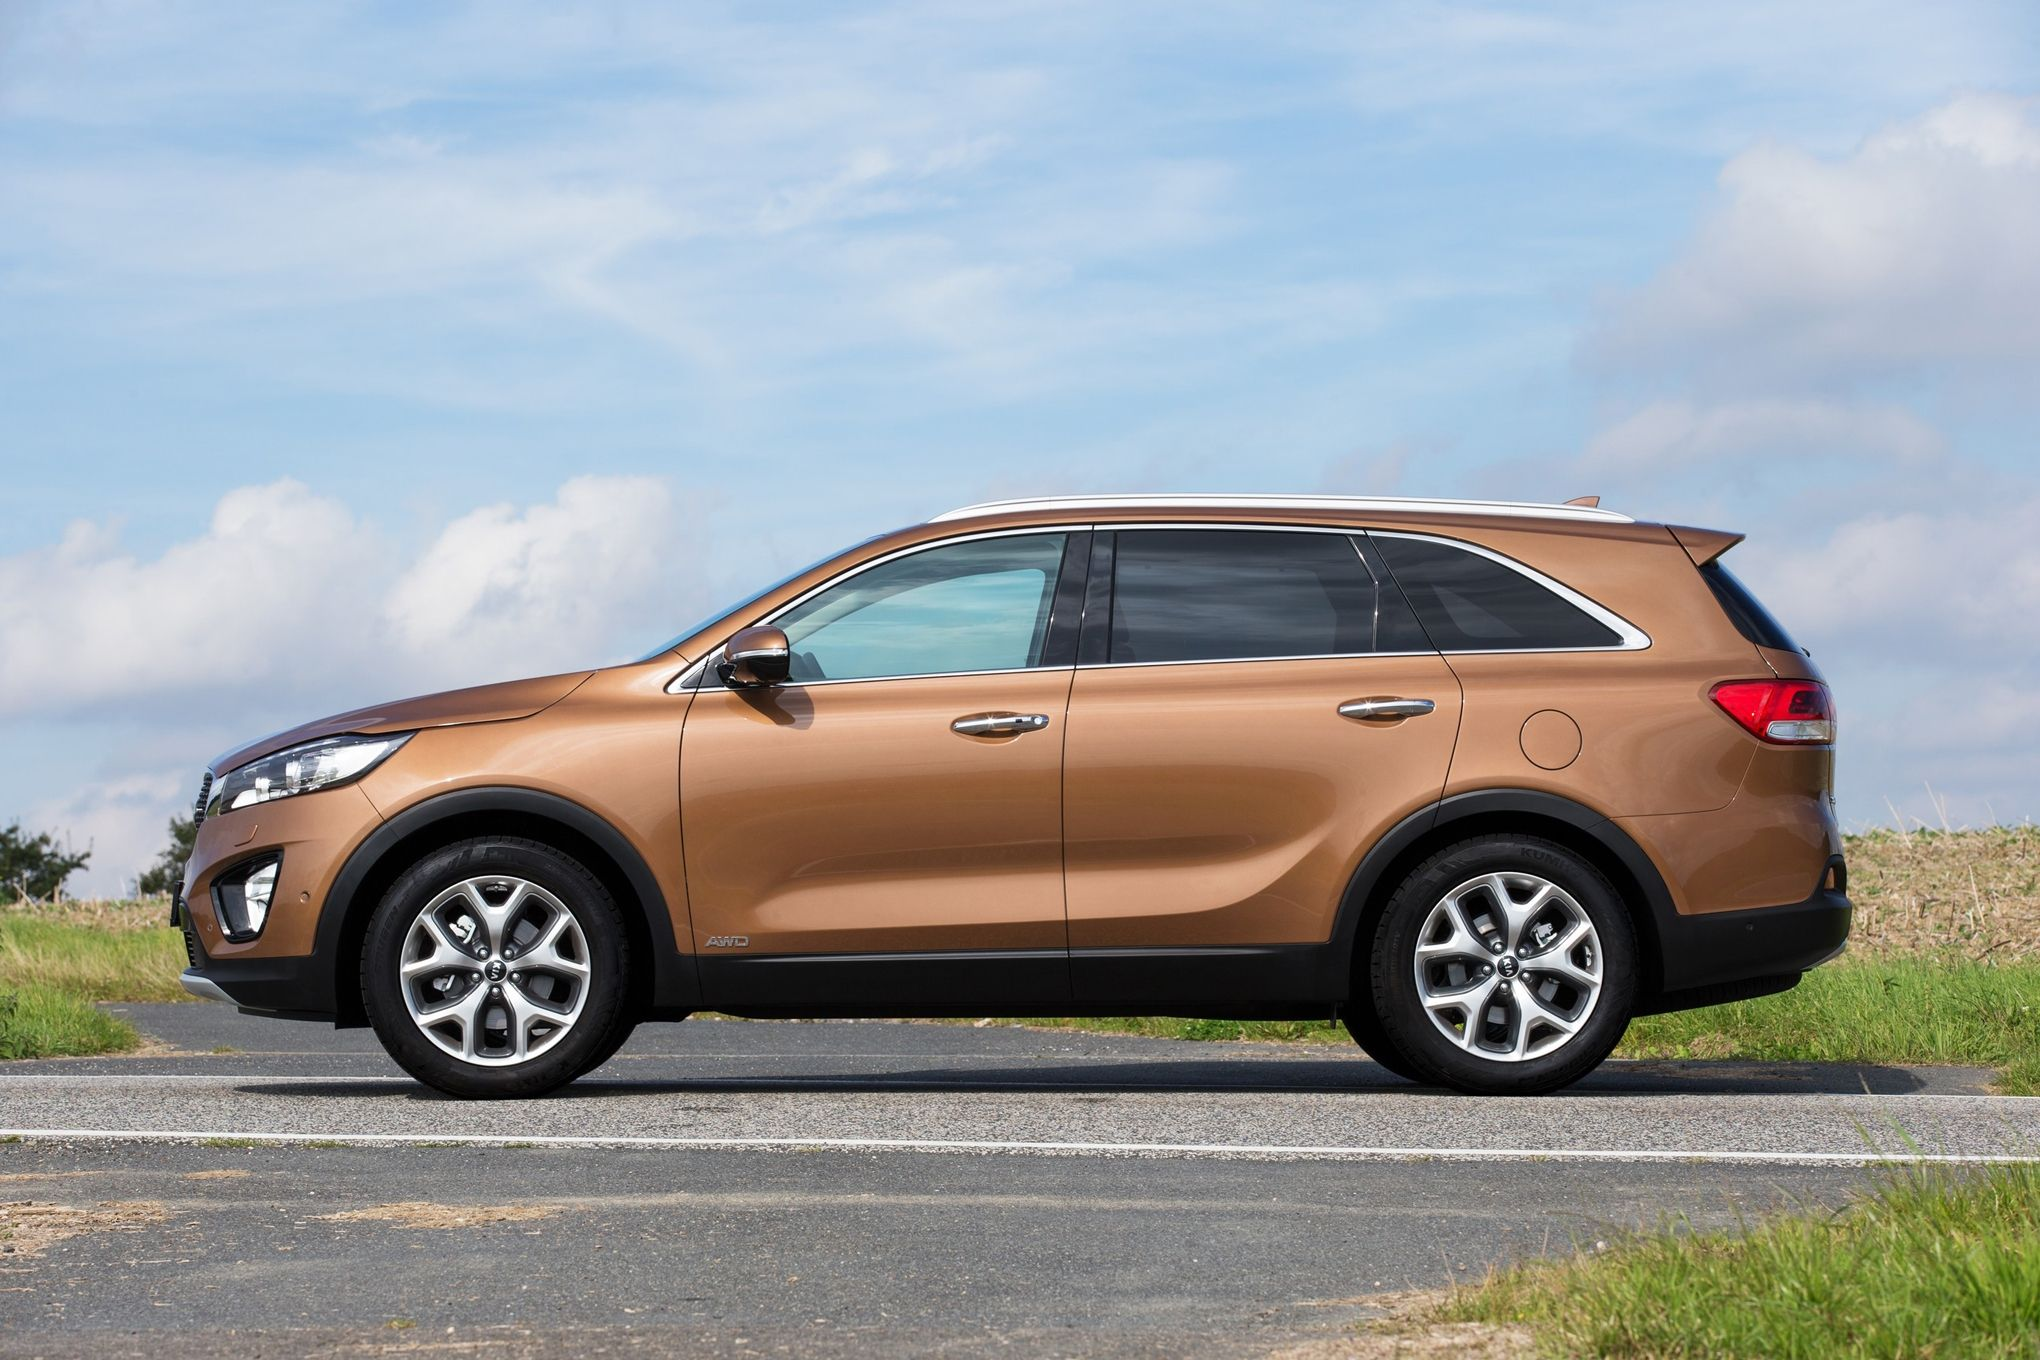 sx in news show more three review price quarter limited motion front kia sorento